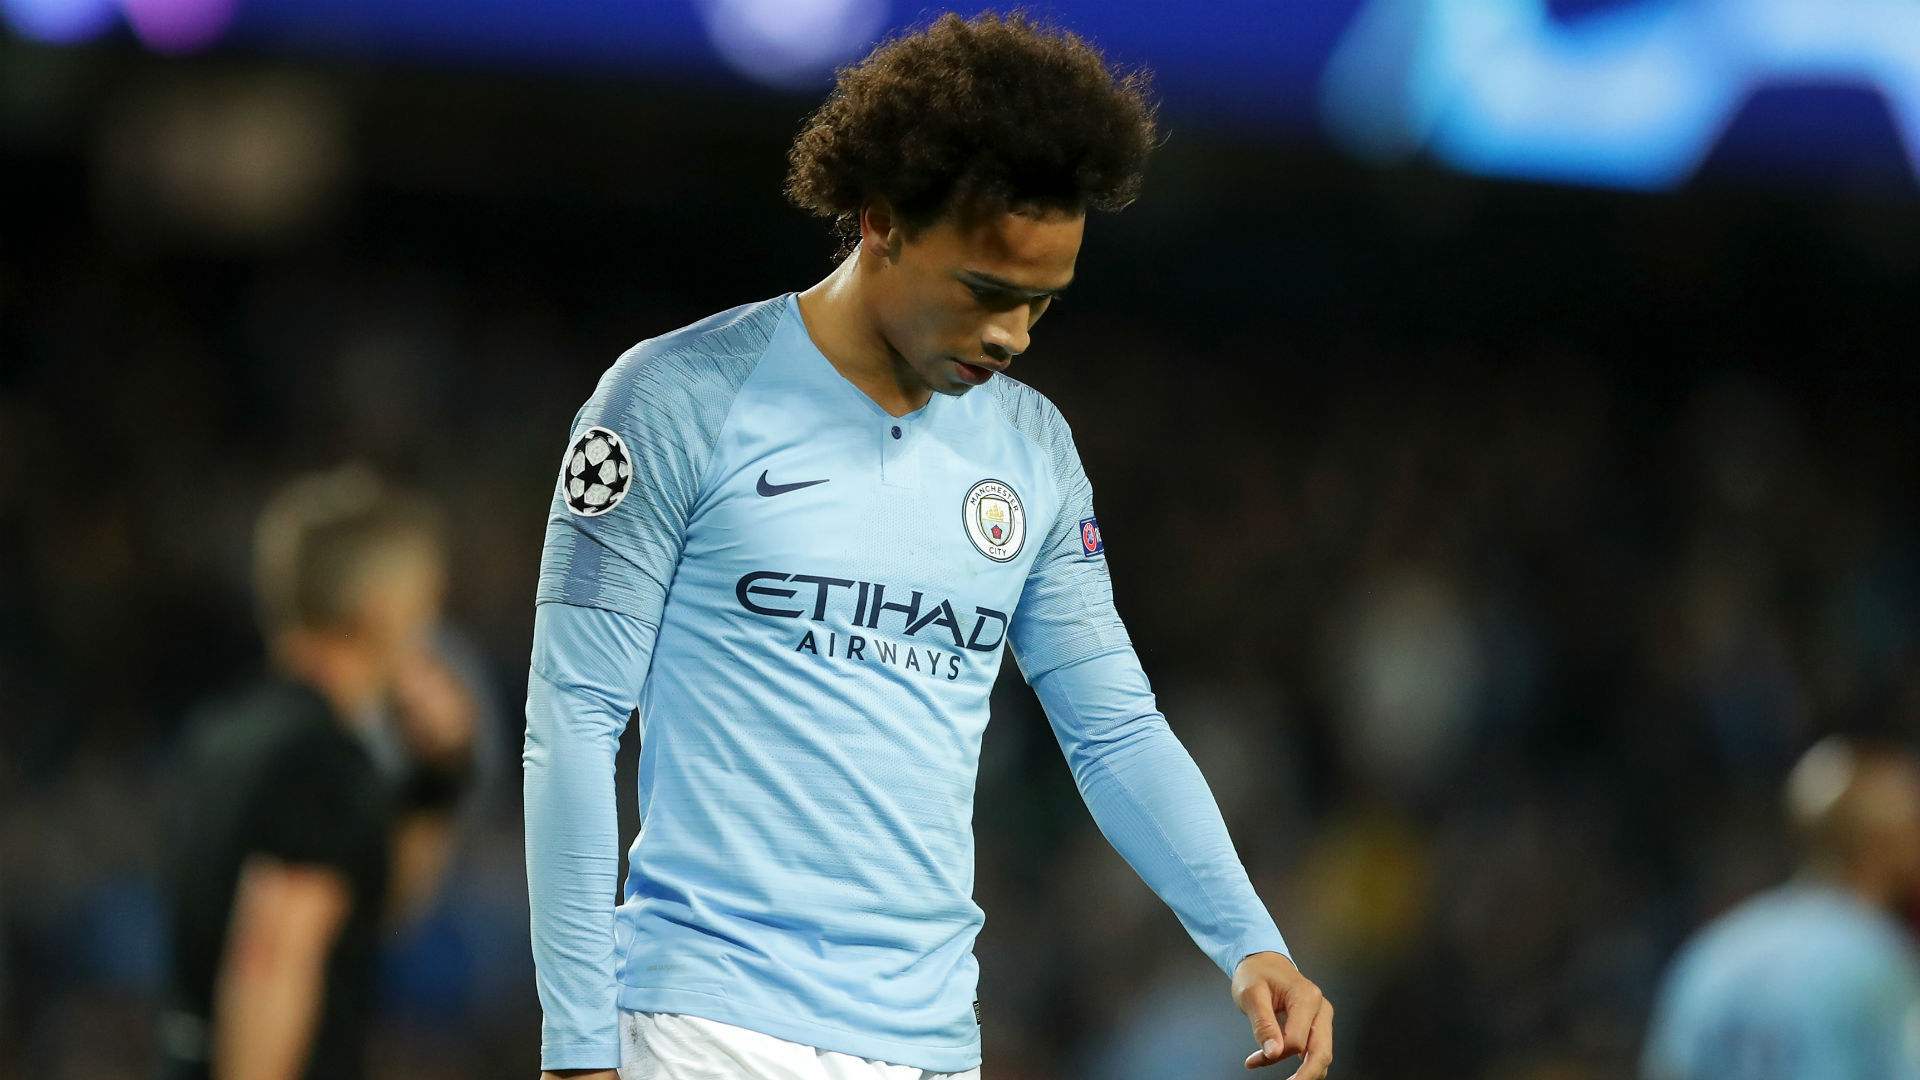 Leroy Sane Manchester City Champions League 2018